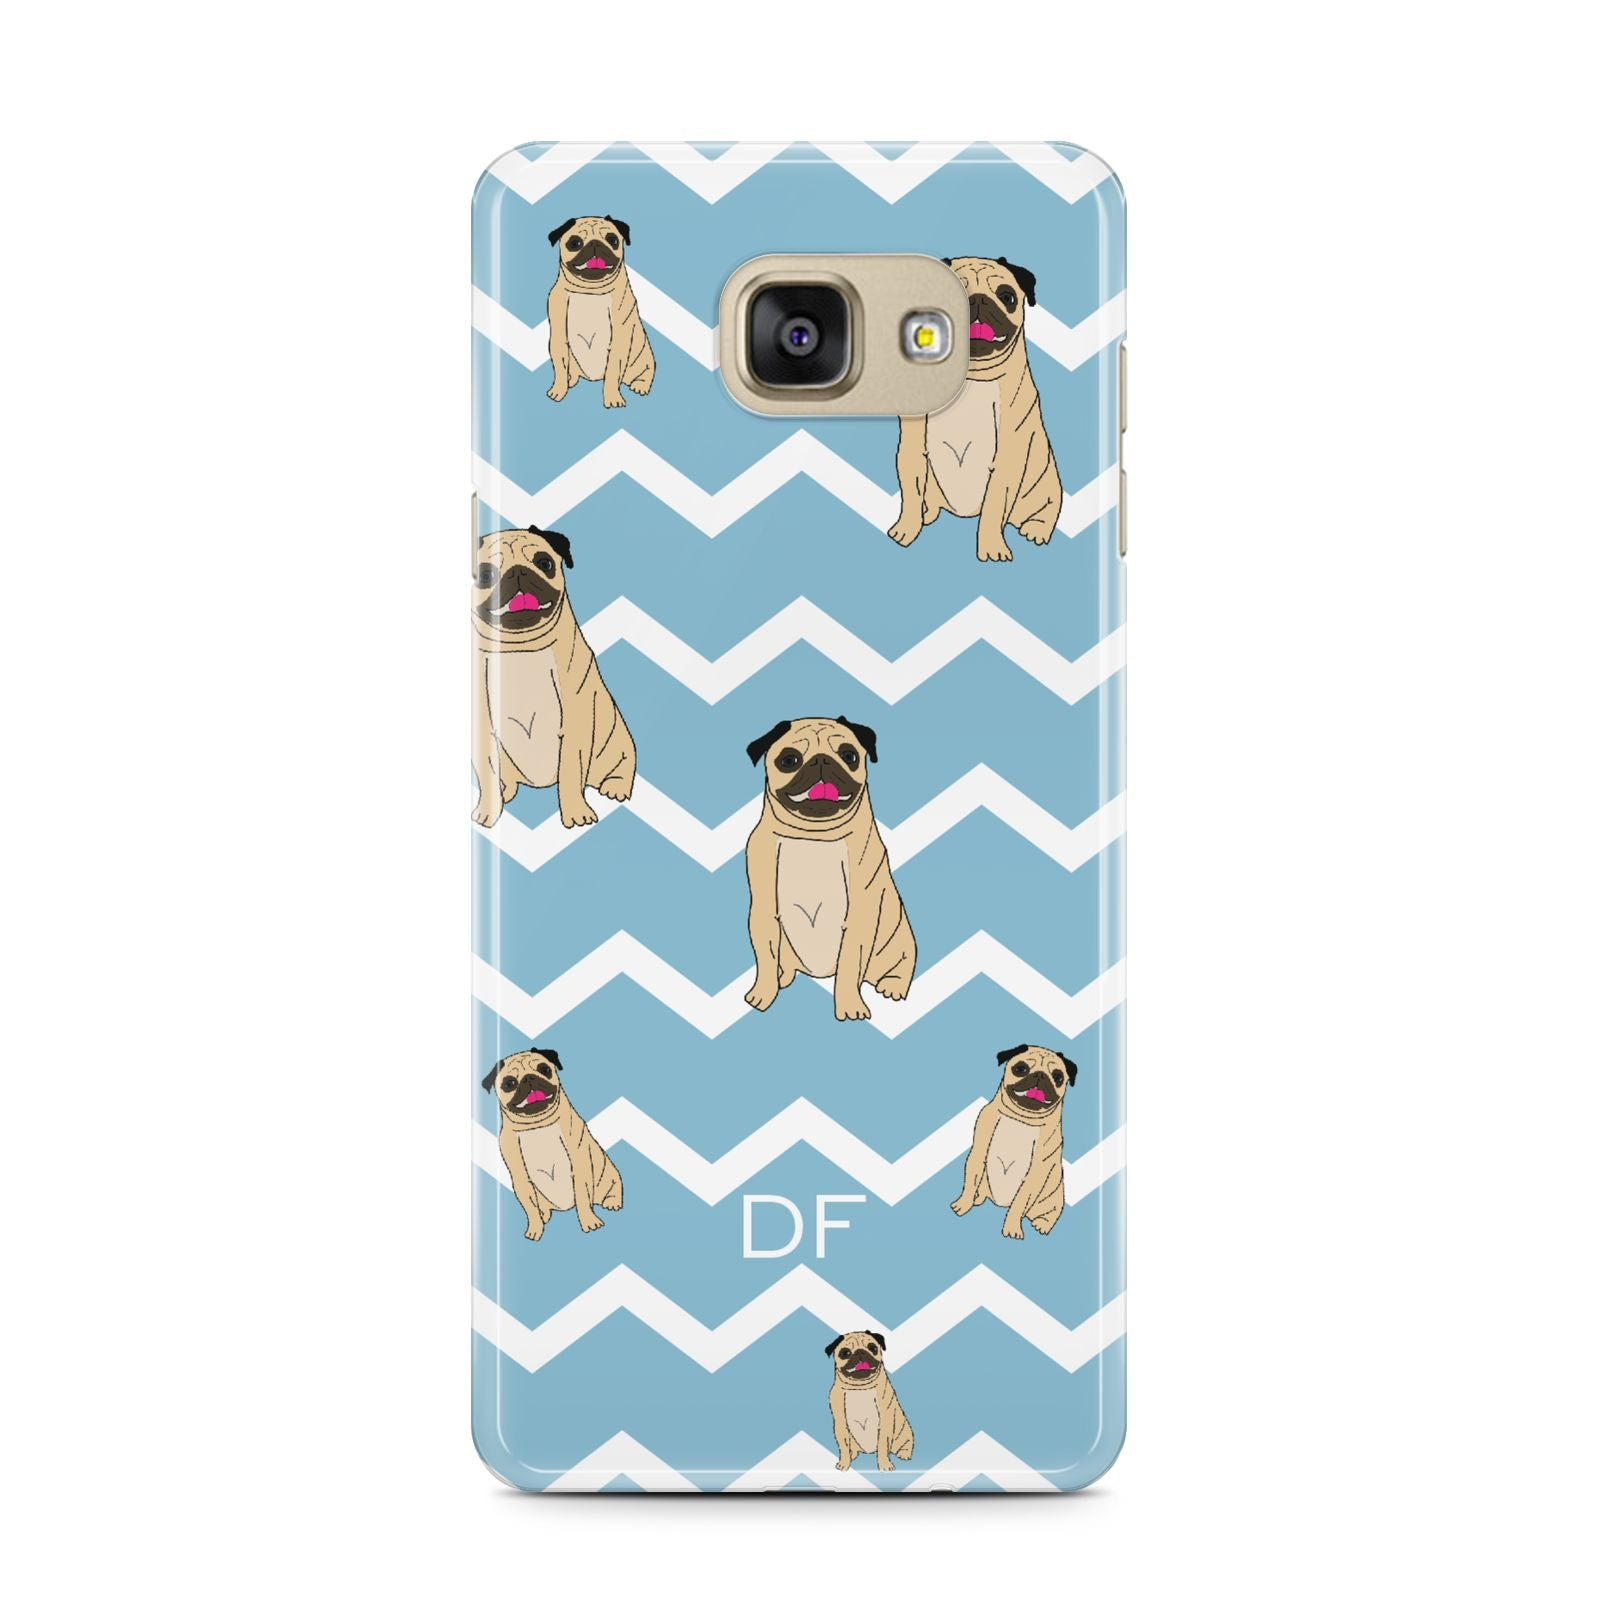 Personalised Pug Initials Samsung Galaxy A7 2016 Case on gold phone